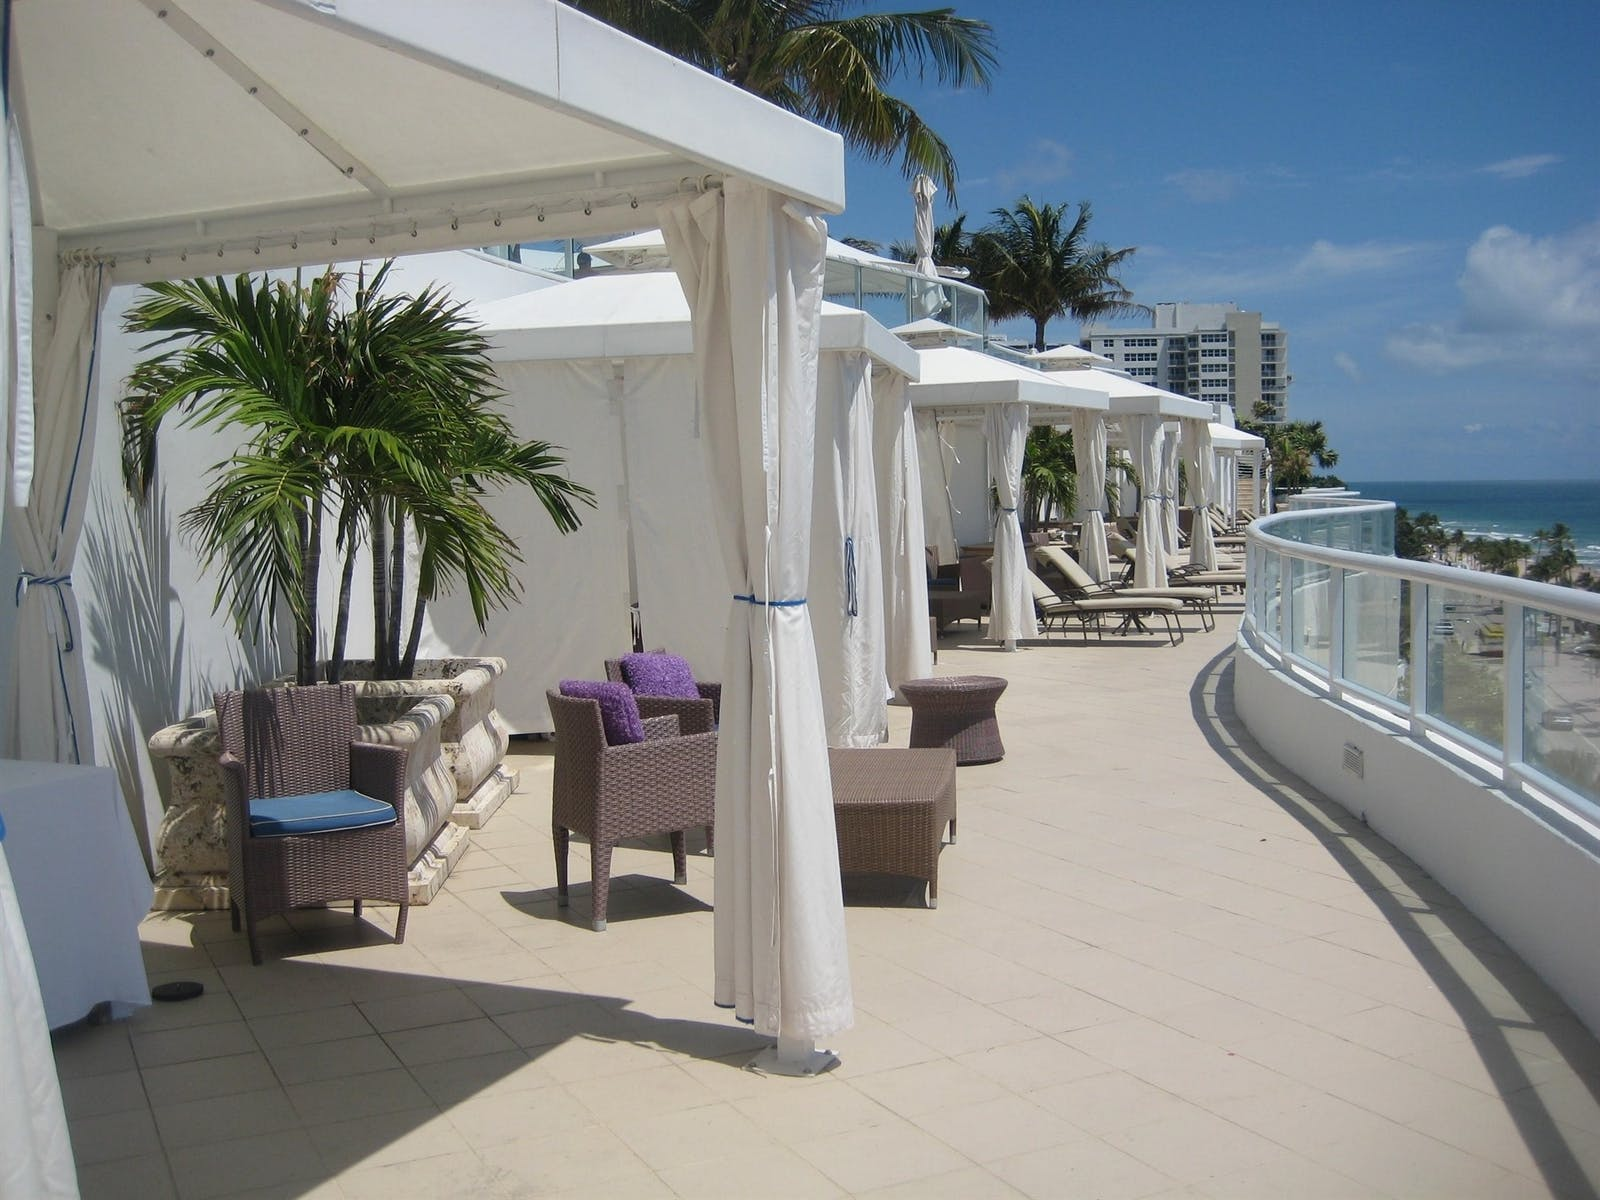 cabana pool deck at the ritz-carlton fort lauderdale